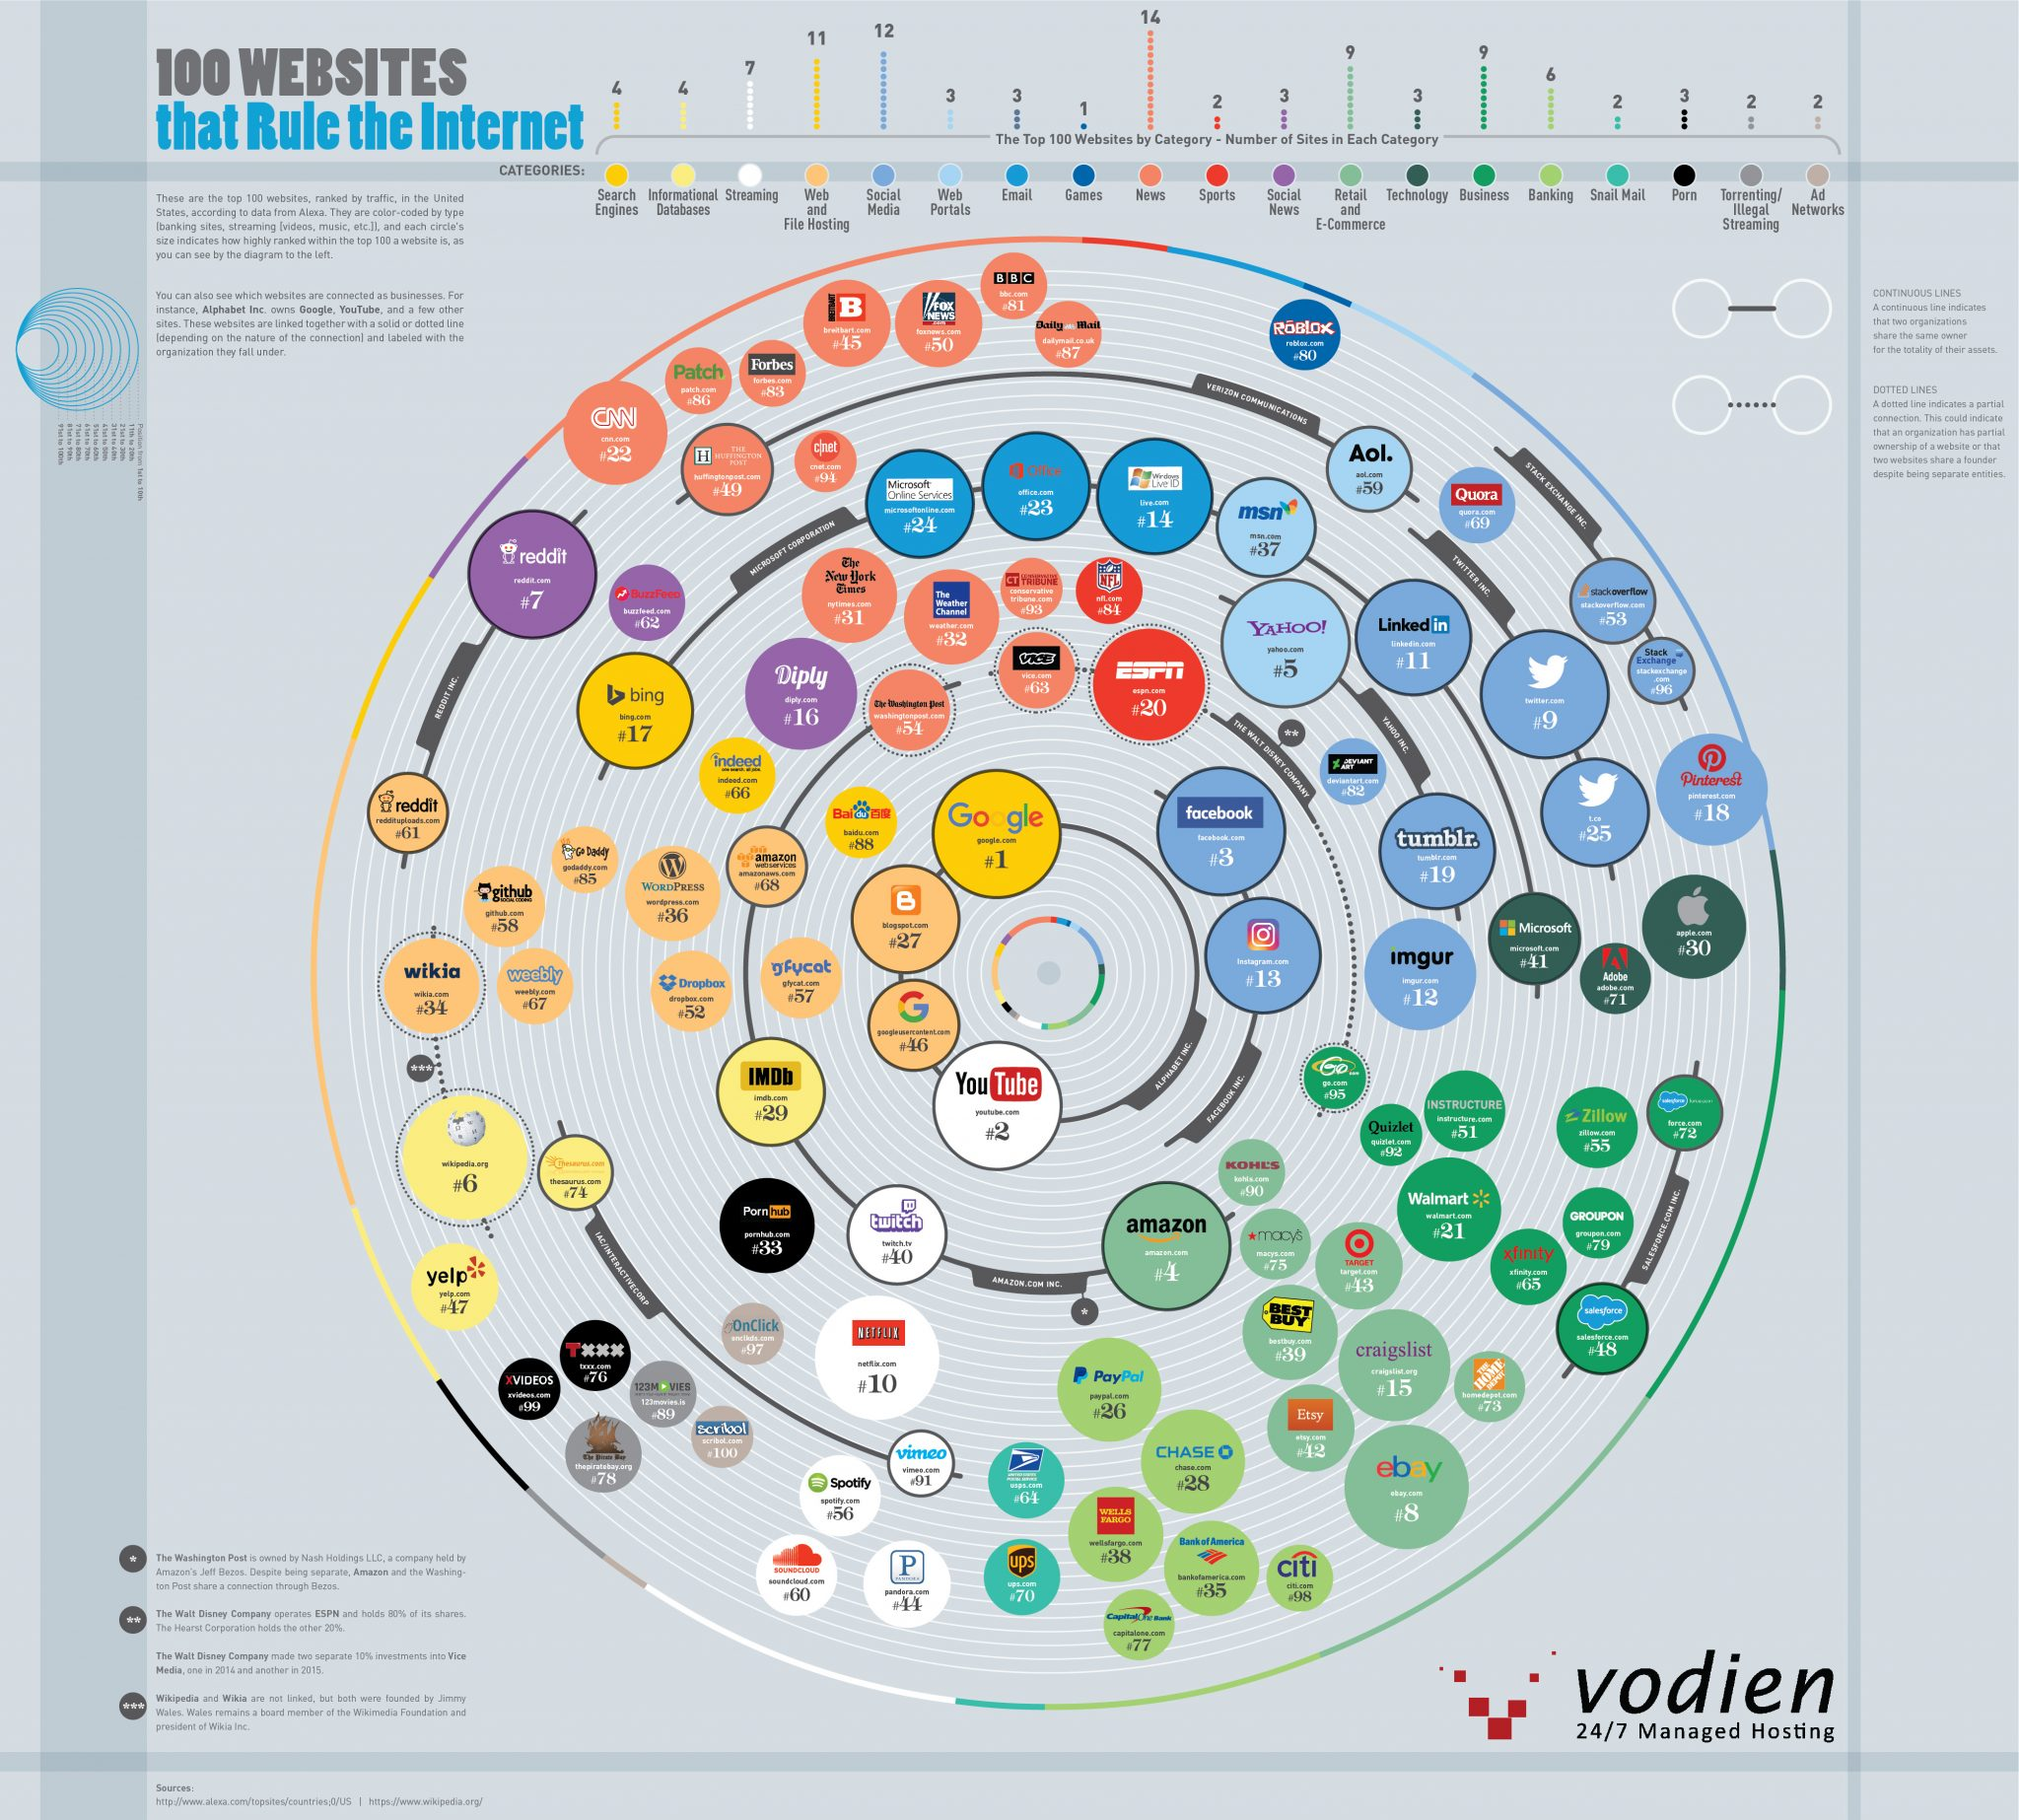 100 Websites that Rule the Internet